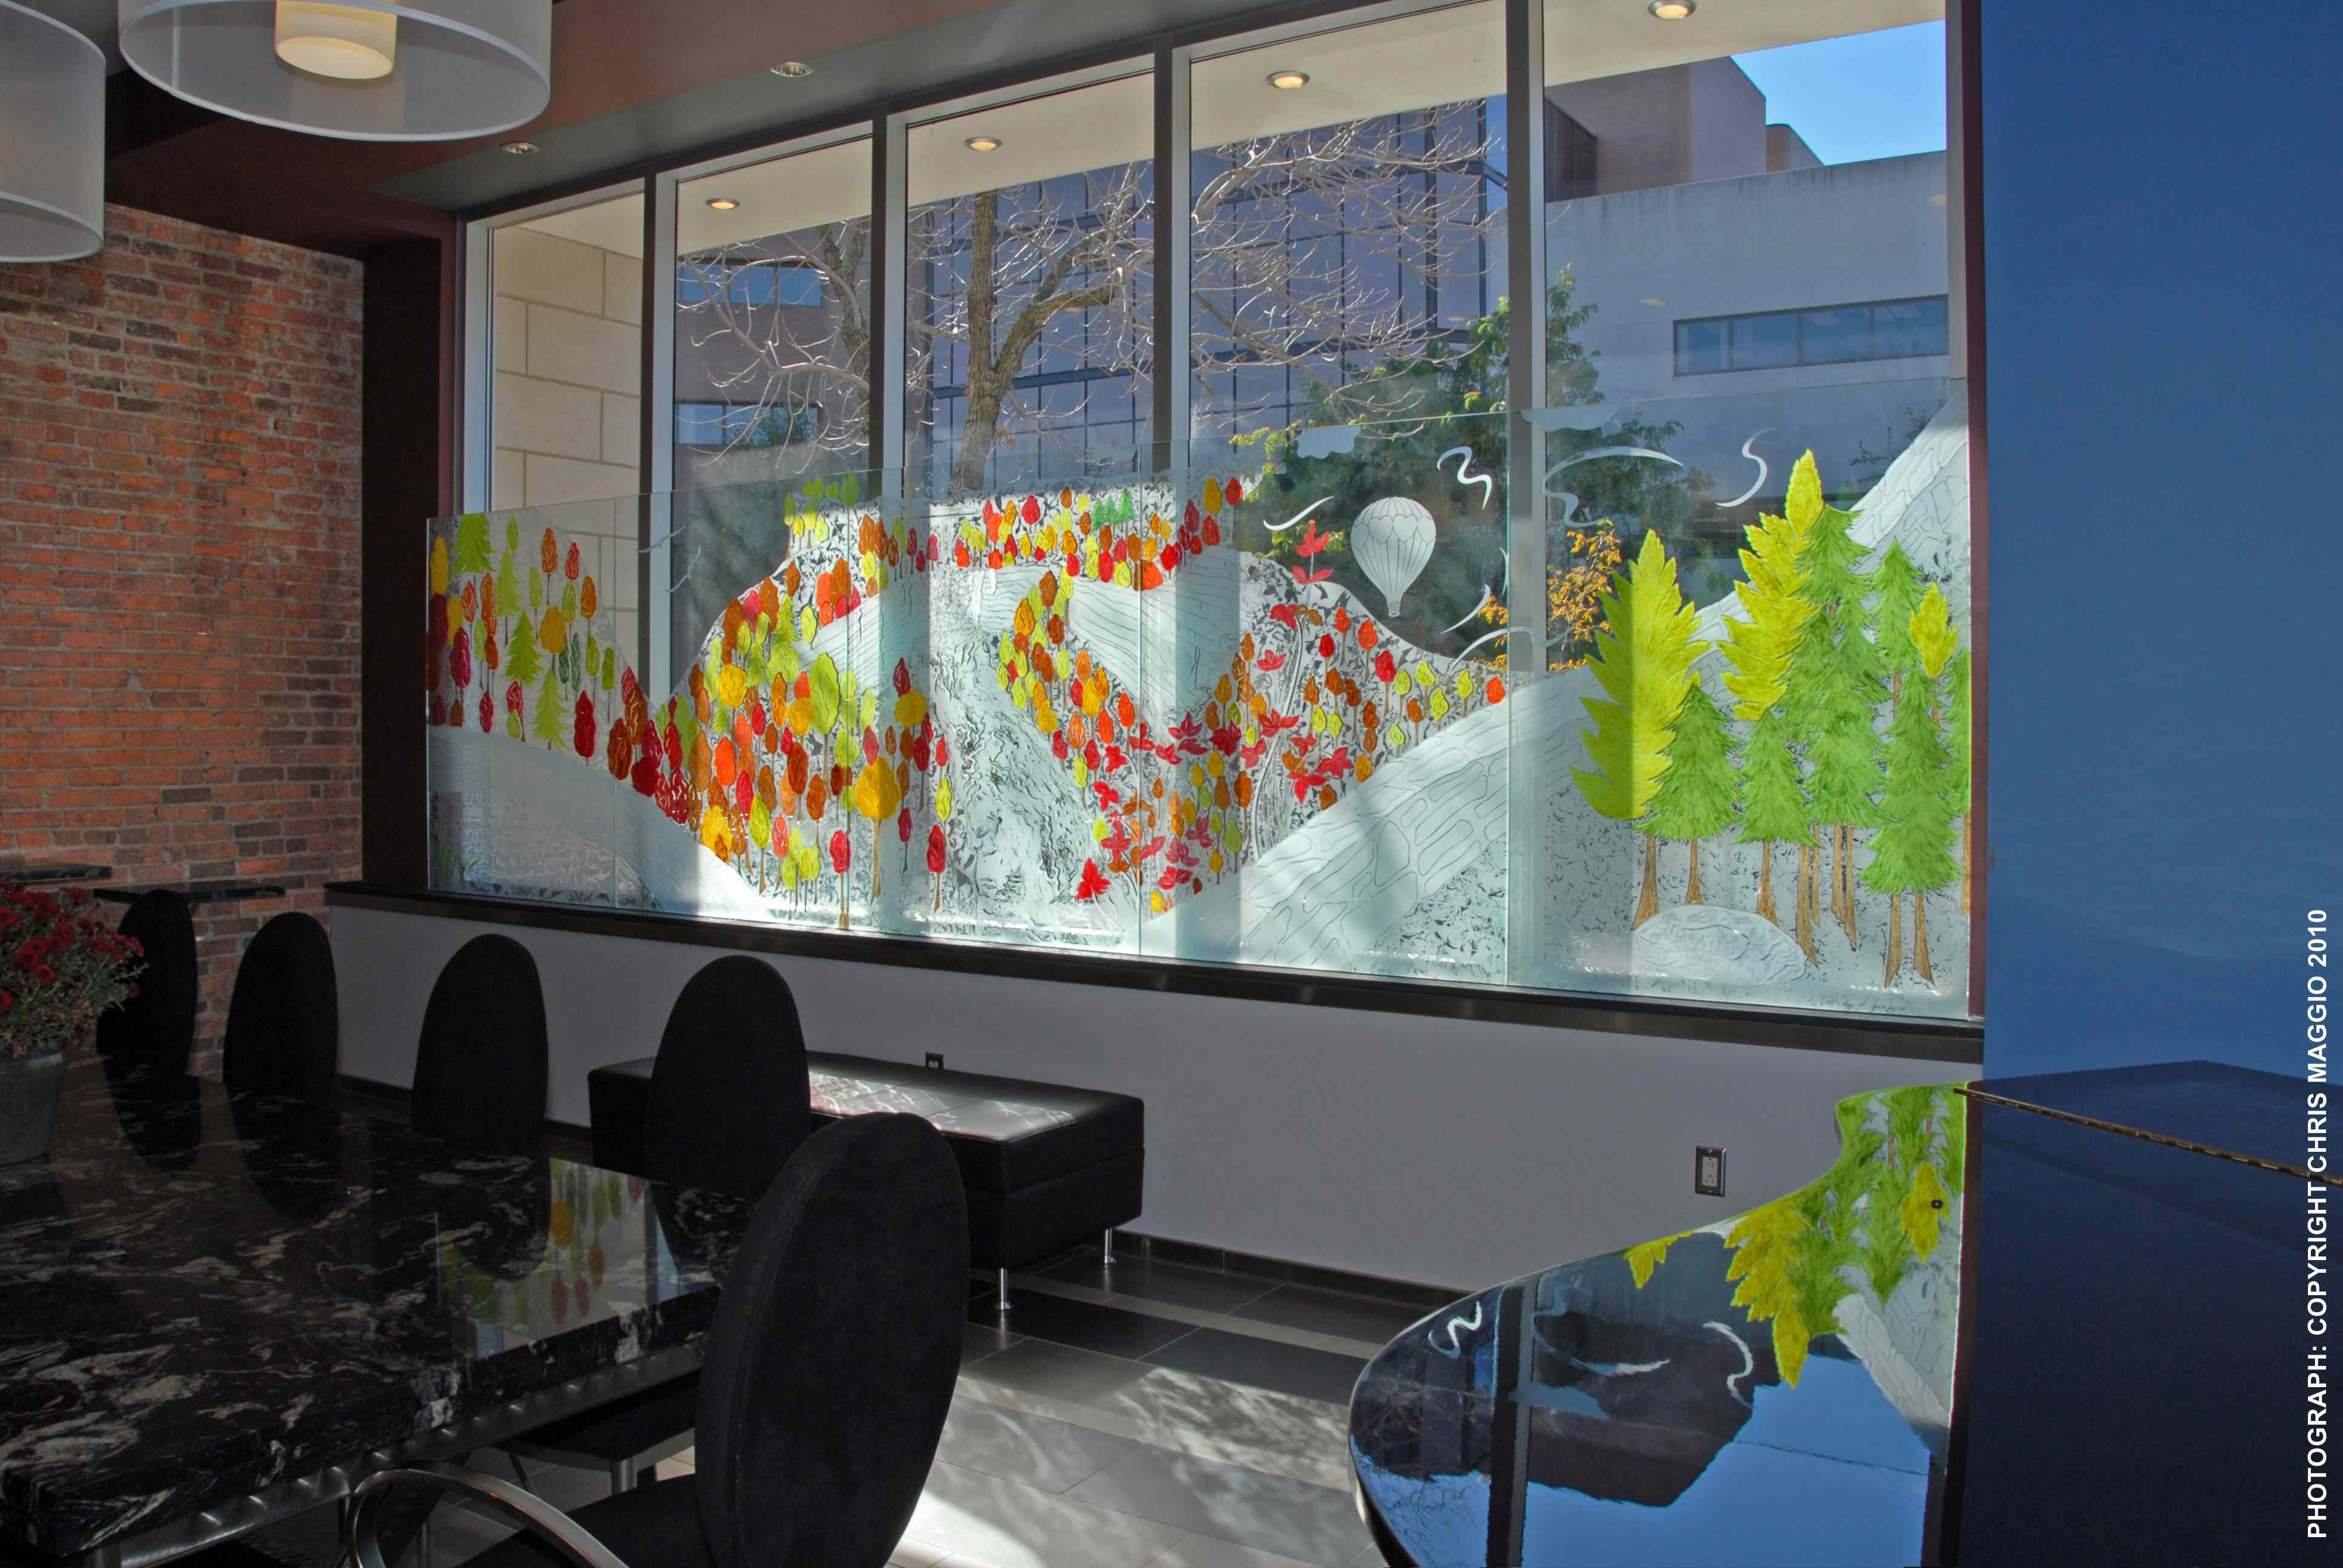 Painting On Glass Windows : Design glass painting as privacy screen for private